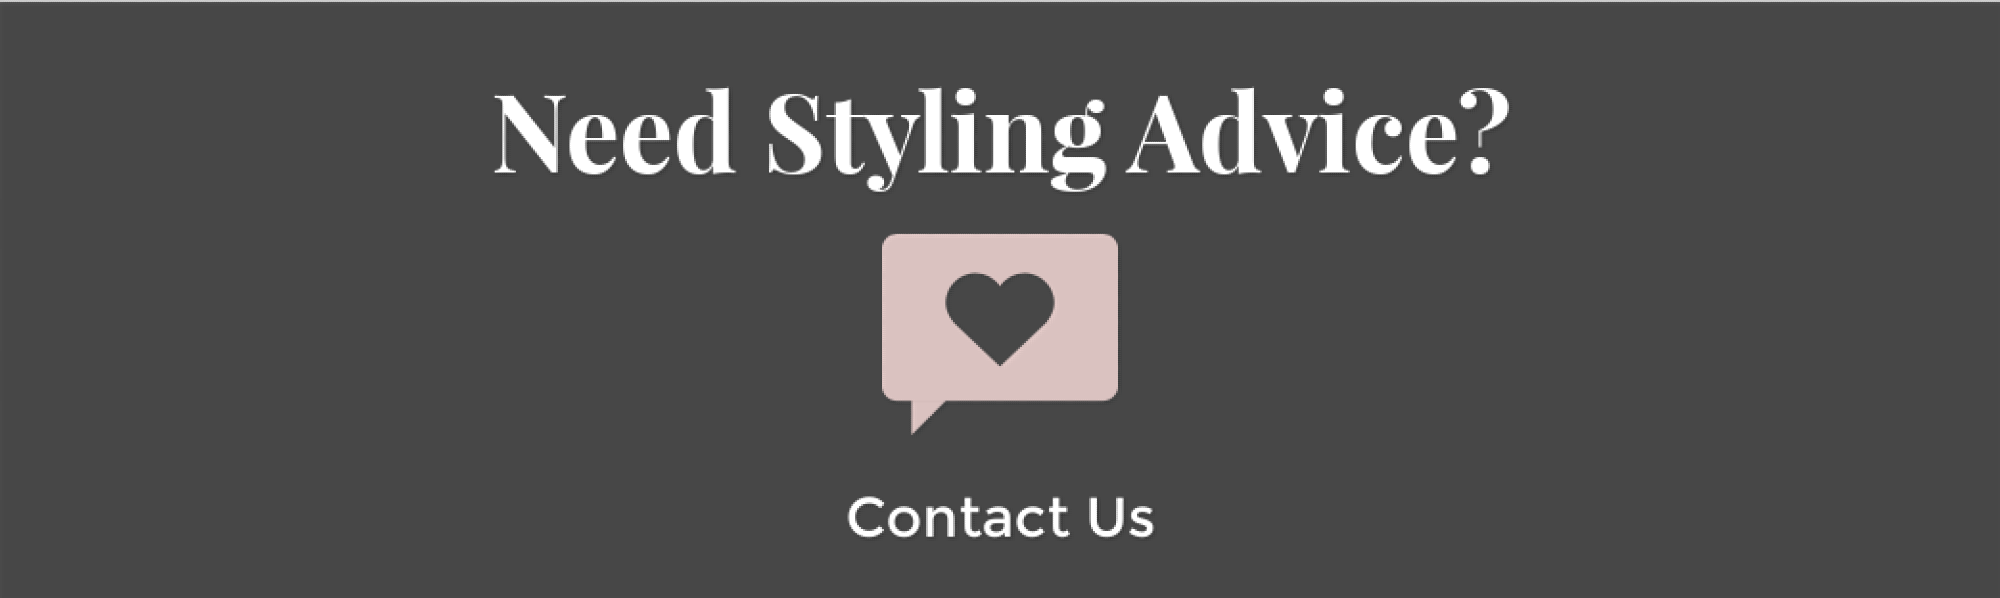 If you're looking for great wedding tips and advice, we have all you'll need to find best bridal style for your big day if you are looking for handmade vines, bridal accessories, wedding jewellery, diamante earrings or necklaces we have something for your big day!